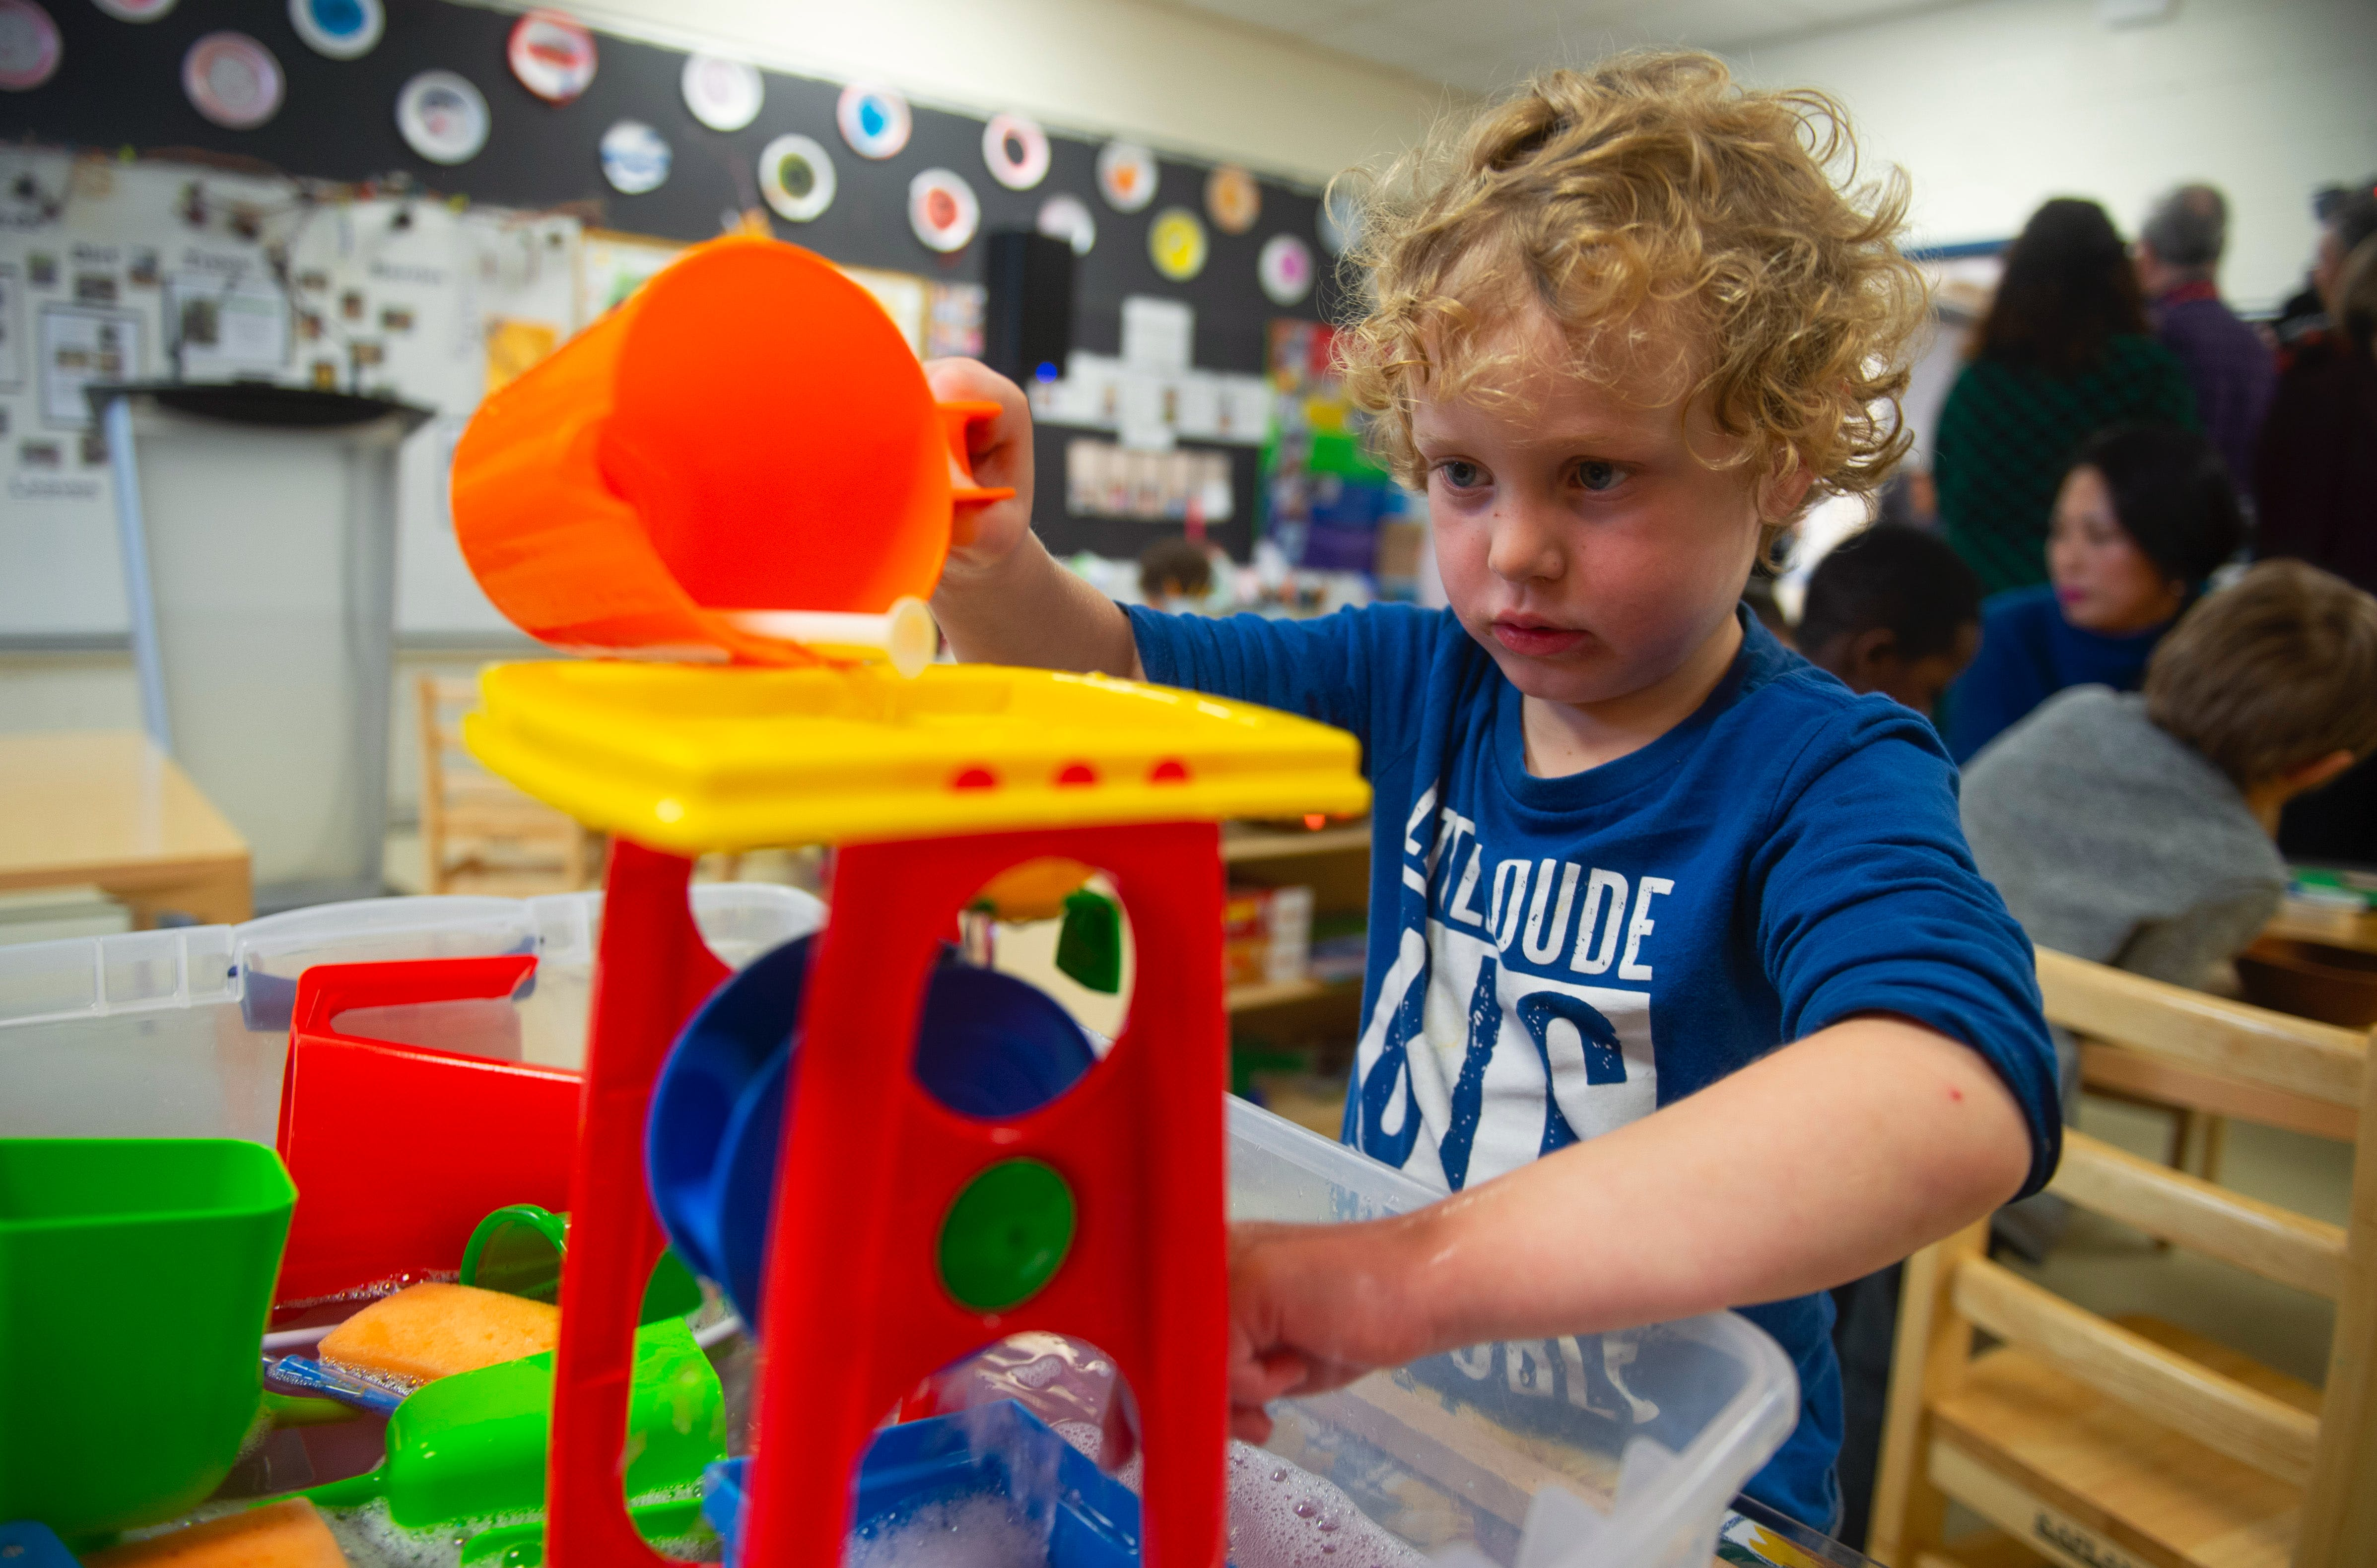 Pre-primary student Noah Grover plays in his classroom prior to an announcement at Chebucto Heights Elementary on Tuesday, February 11, 2020. The pre-primary program is being expanded to the remaining 48 schools who didn't already have it.